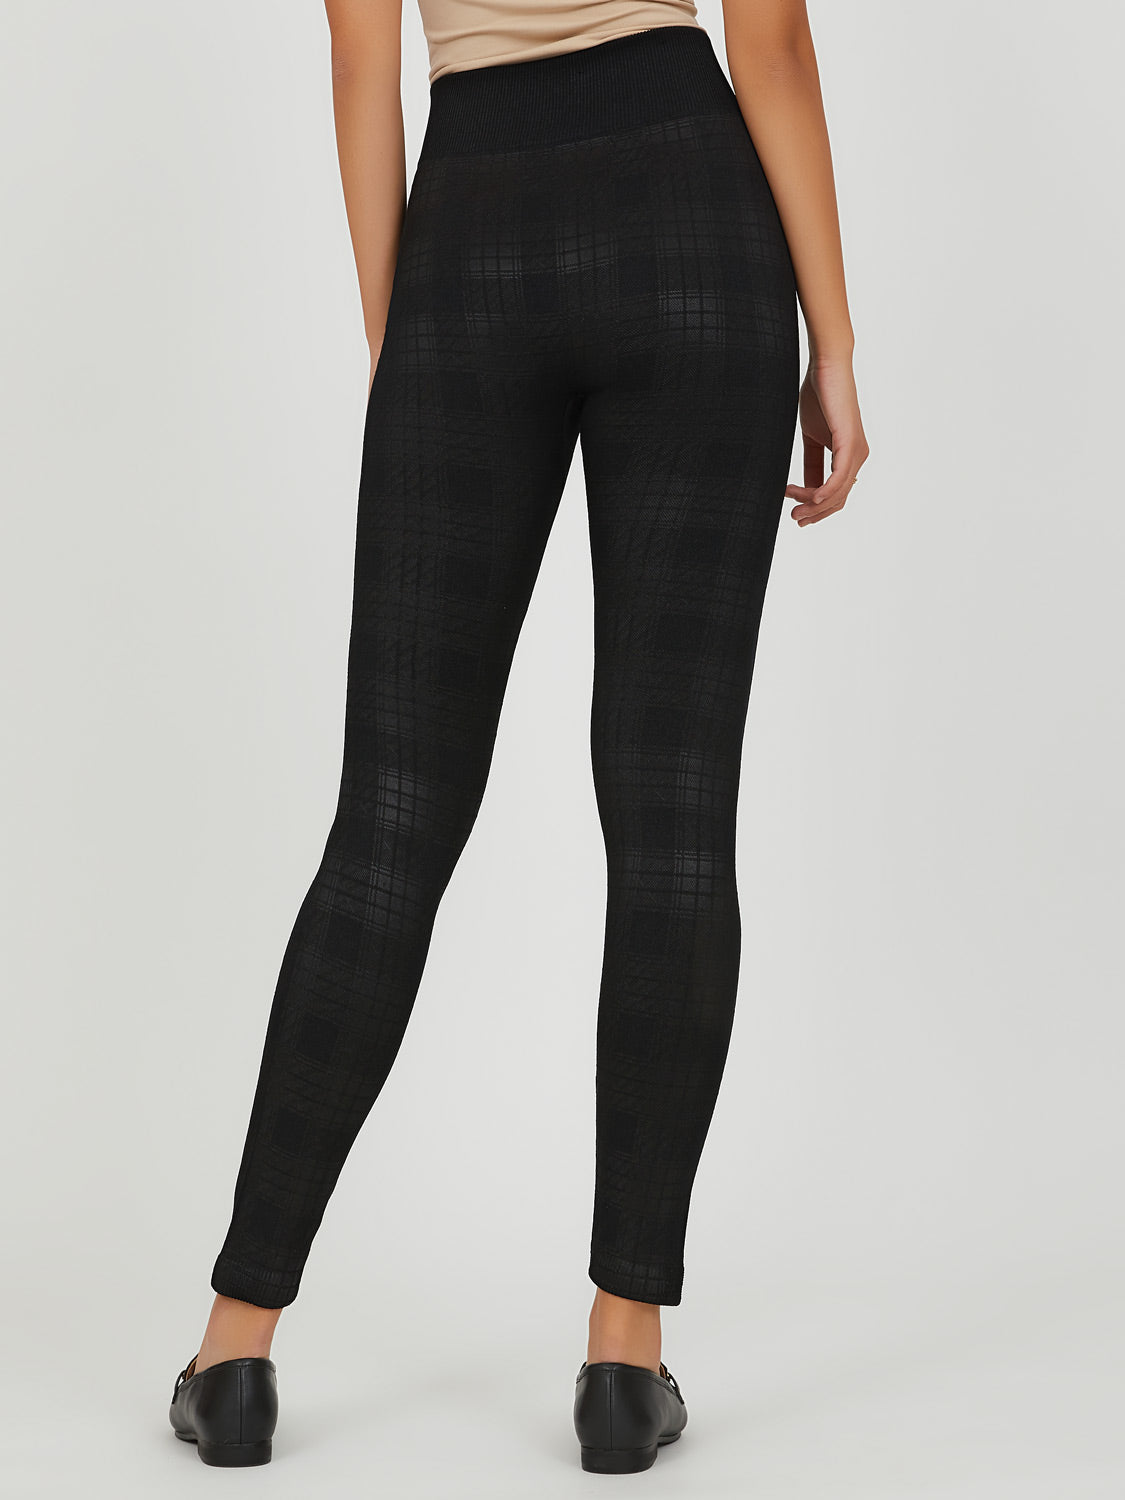 Plaid Fleece Lined Legging